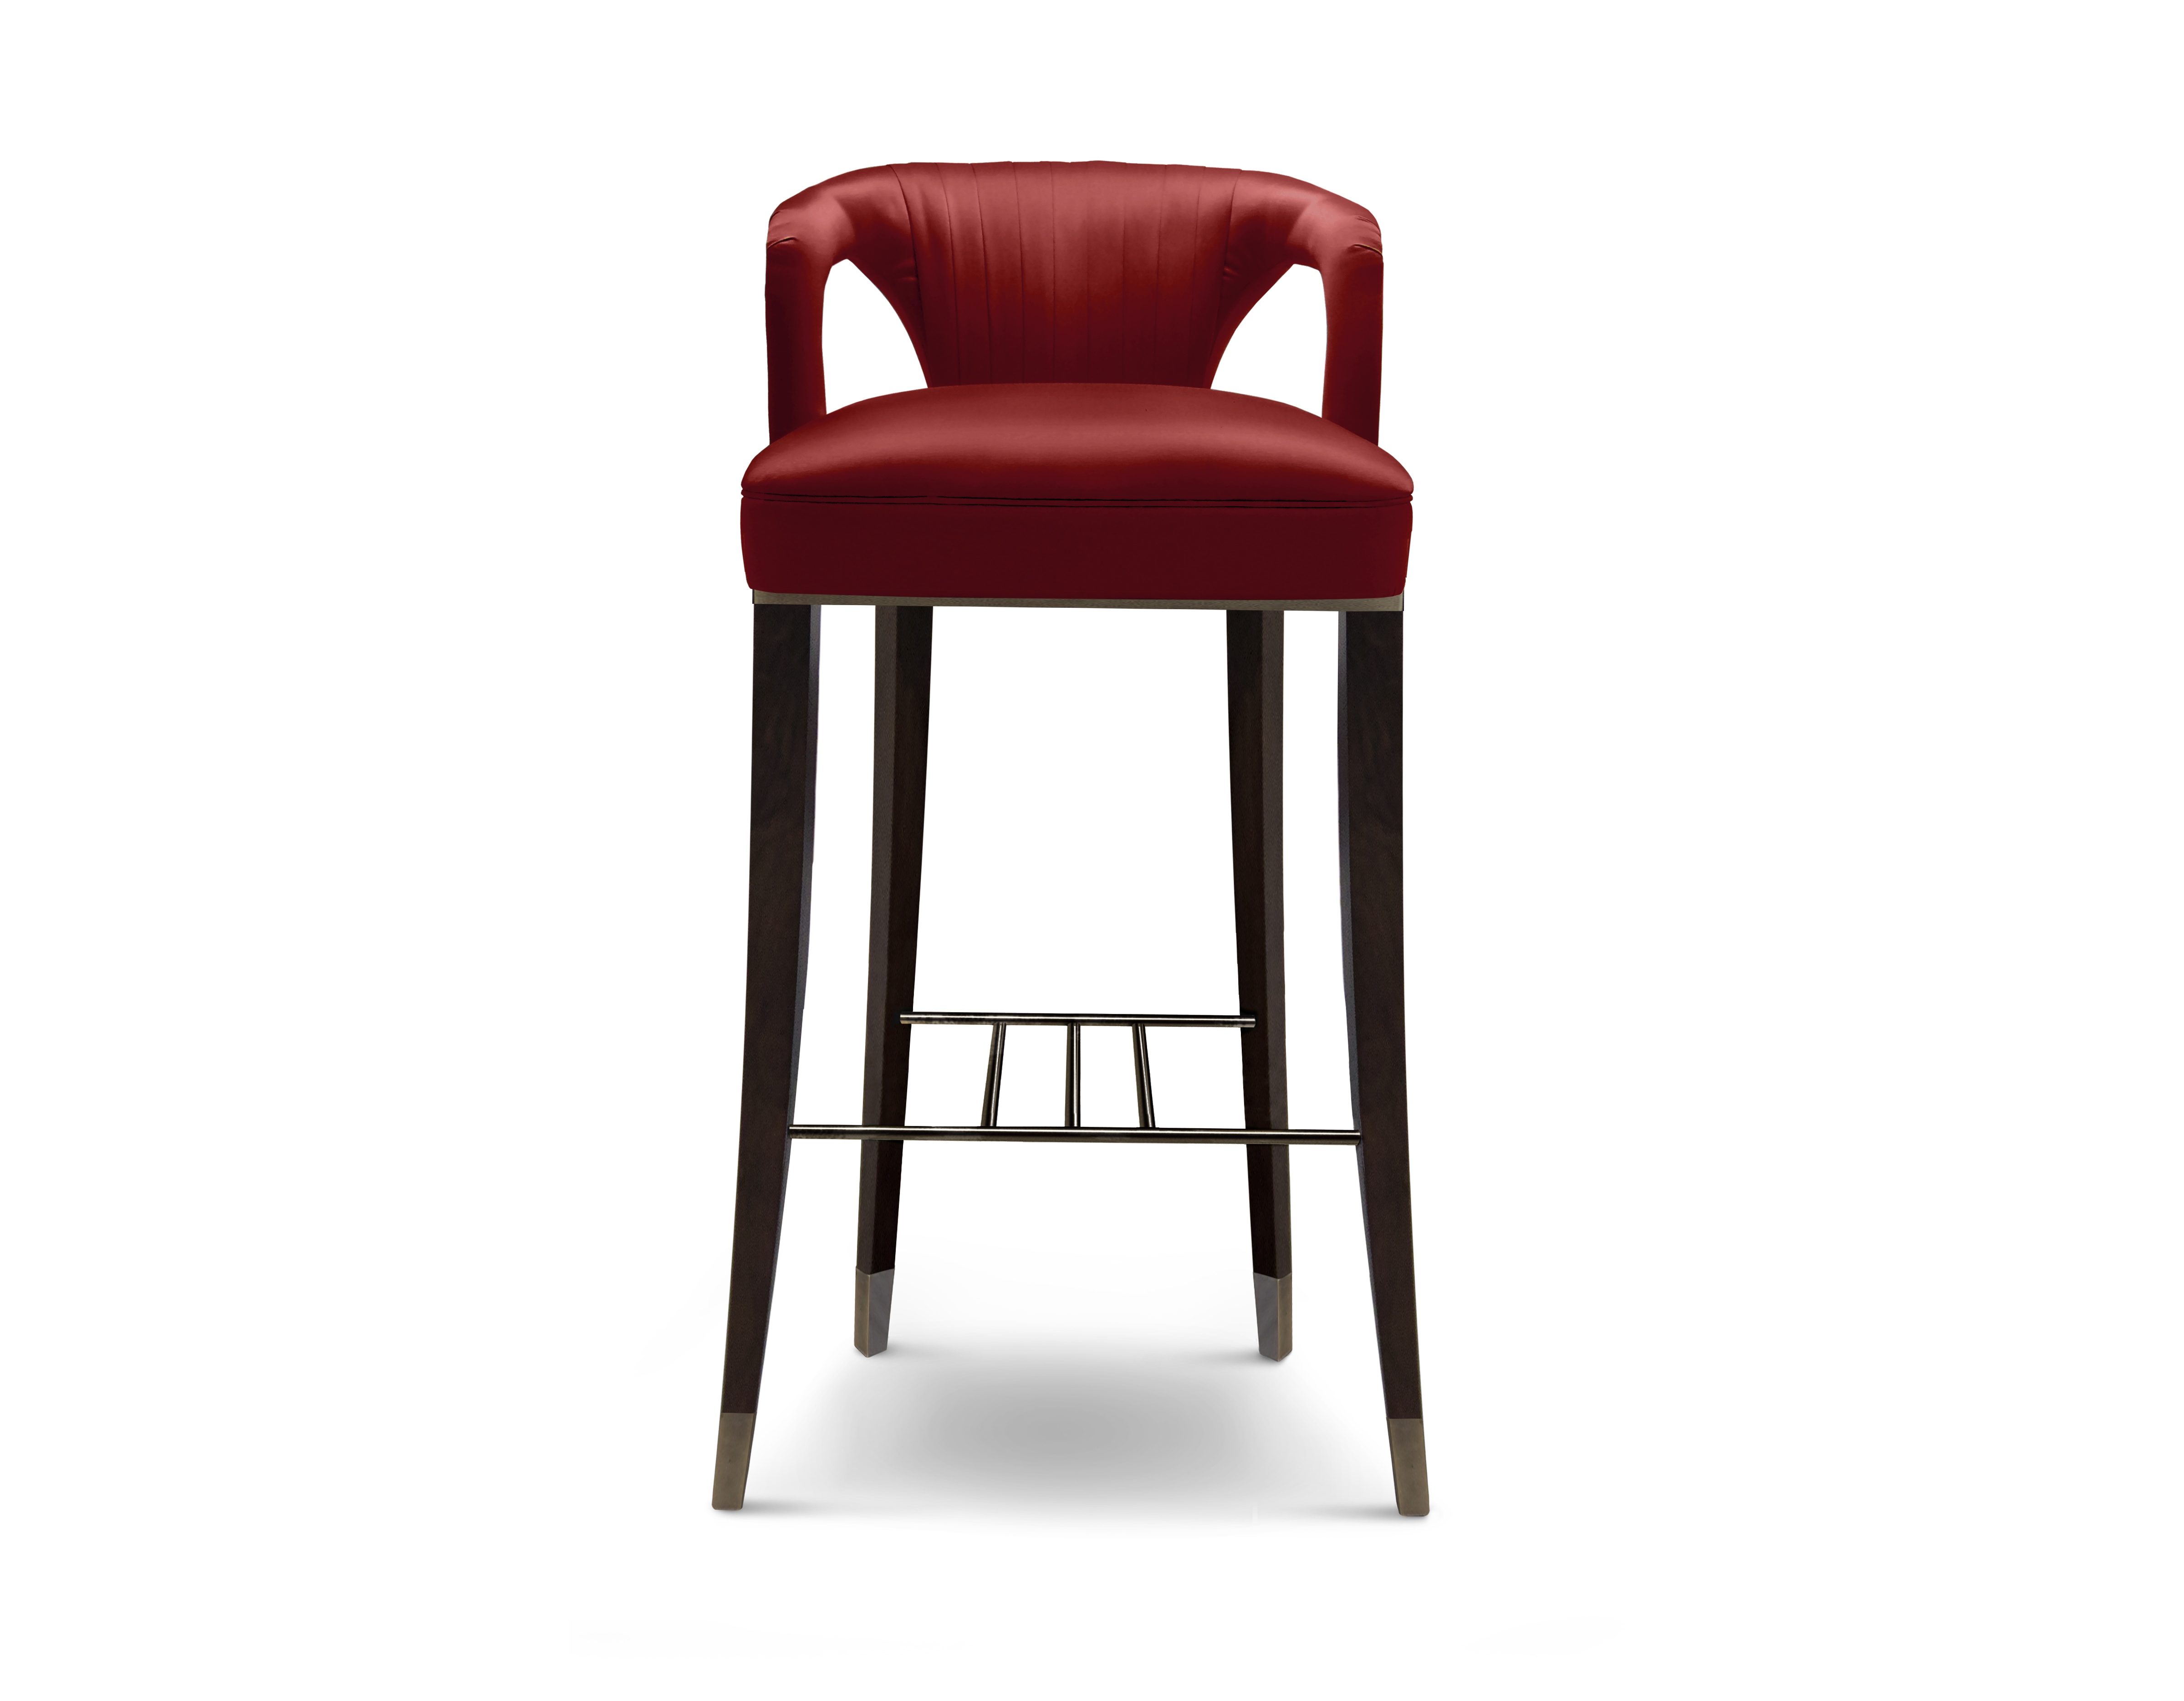 karoo  bar chair contemporary design by brabbu - ( download image )